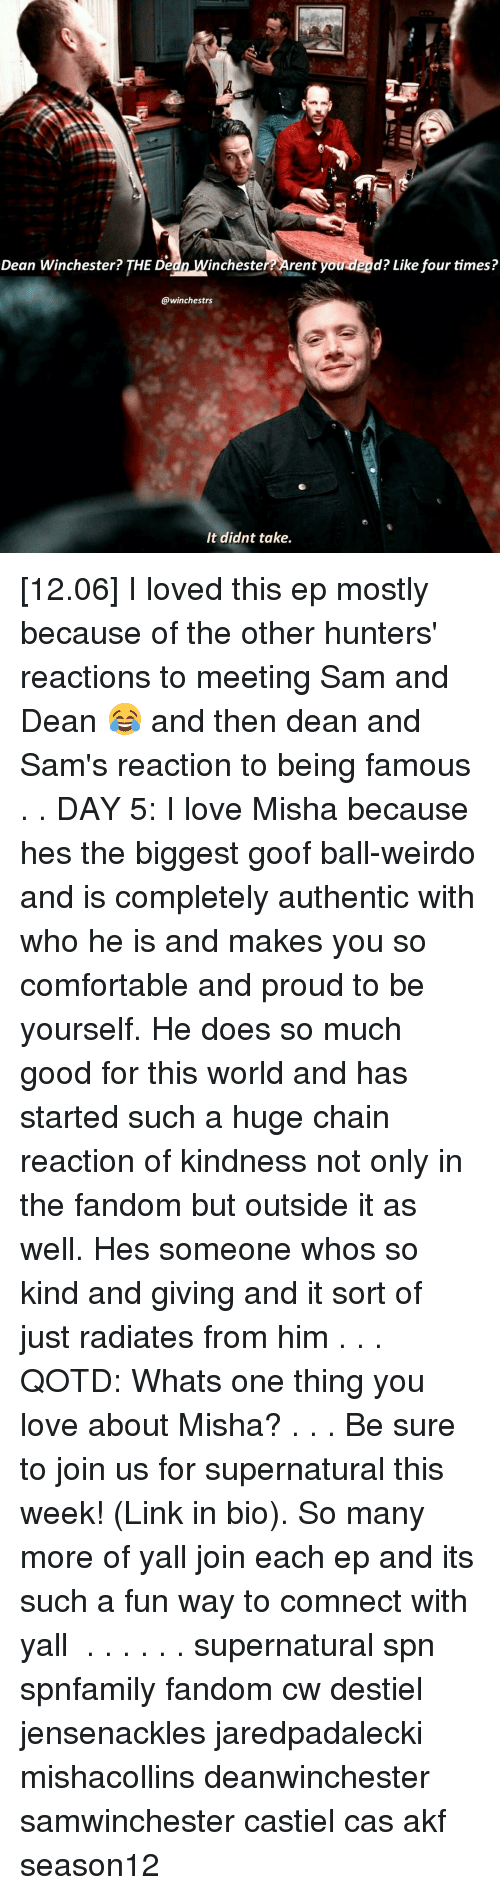 goof: Dean Winchester? THE Dedn inchester rent you dead? Like four times?  @winchestrs  It didnt take. [12.06] I loved this ep mostly because of the other hunters' reactions to meeting Sam and Dean 😂 and then dean and Sam's reaction to being famous . . DAY 5: I love Misha because hes the biggest goof ball-weirdo and is completely authentic with who he is and makes you so comfortable and proud to be yourself. He does so much good for this world and has started such a huge chain reaction of kindness not only in the fandom but outside it as well. Hes someone whos so kind and giving and it sort of just radiates from him . . . QOTD: Whats one thing you love about Misha? . . . Be sure to join us for supernatural this week! (Link in bio). So many more of yall join each ep and its such a fun way to comnect with yall ♡ . . . . . . supernatural spn spnfamily fandom cw destiel jensenackles jaredpadalecki mishacollins deanwinchester samwinchester castiel cas akf season12